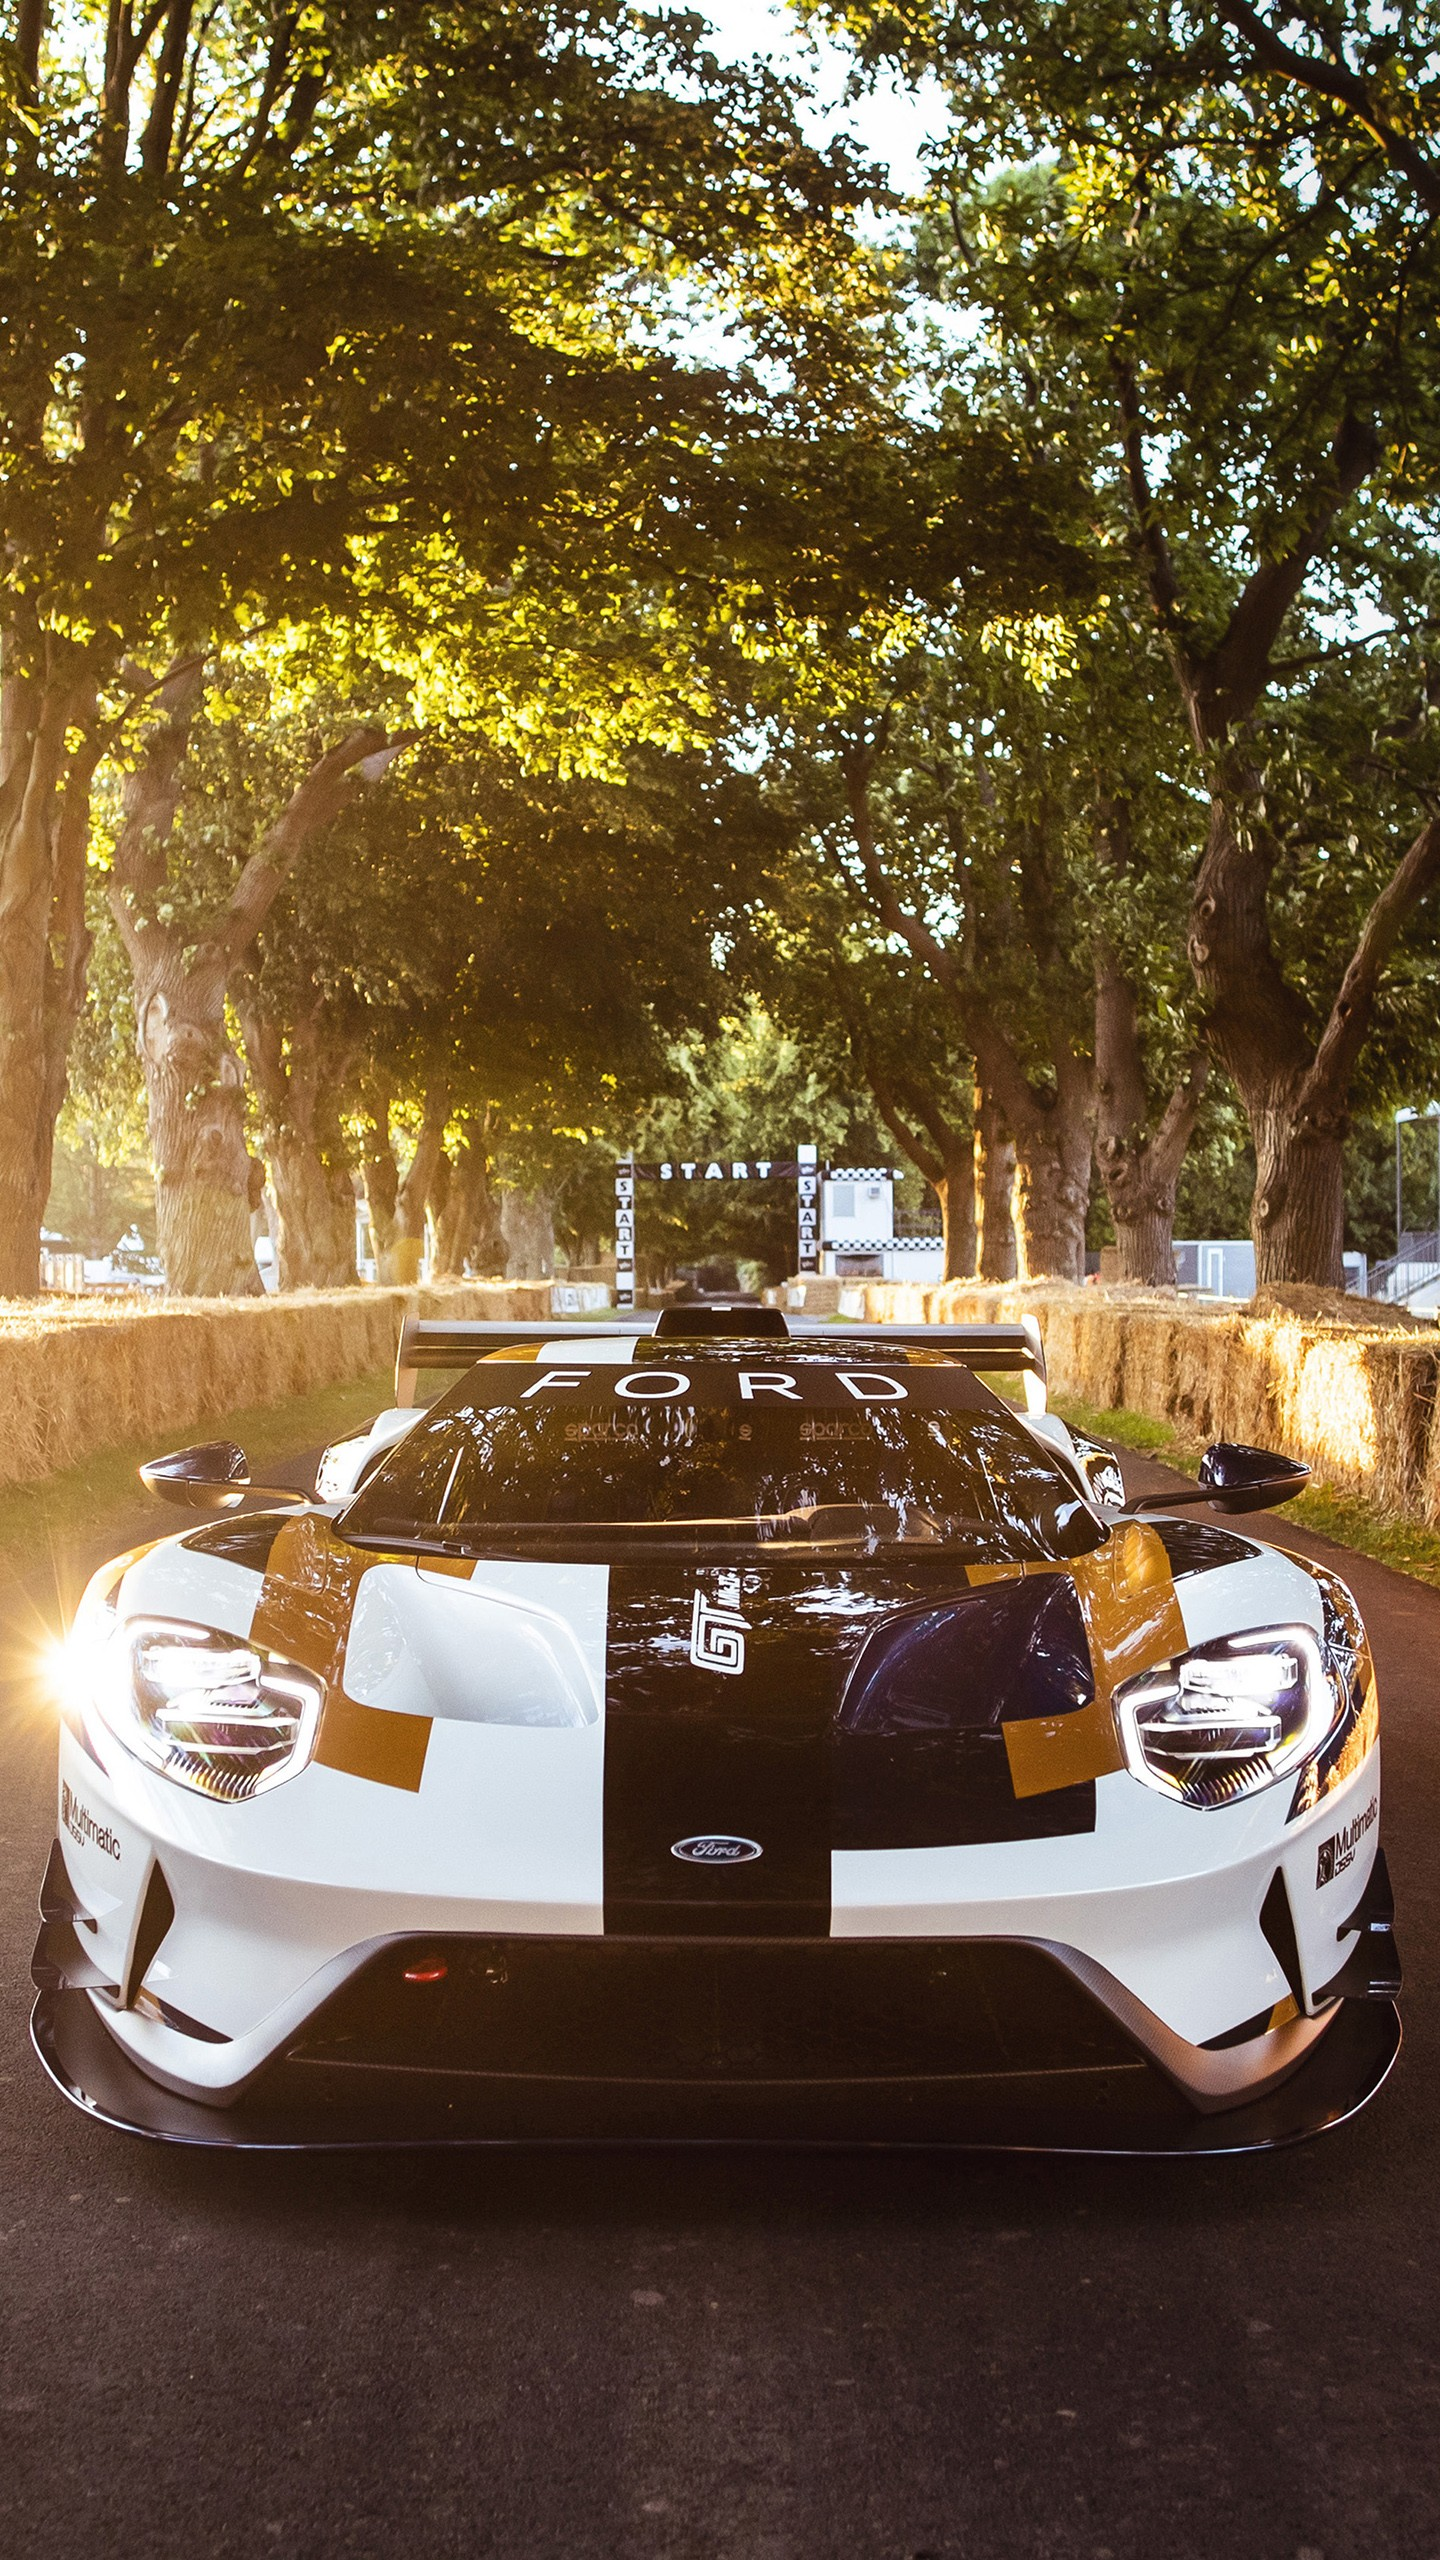 2019 Ford Gt Mk Ii Race Car Wallpapers Wallpaper Cave